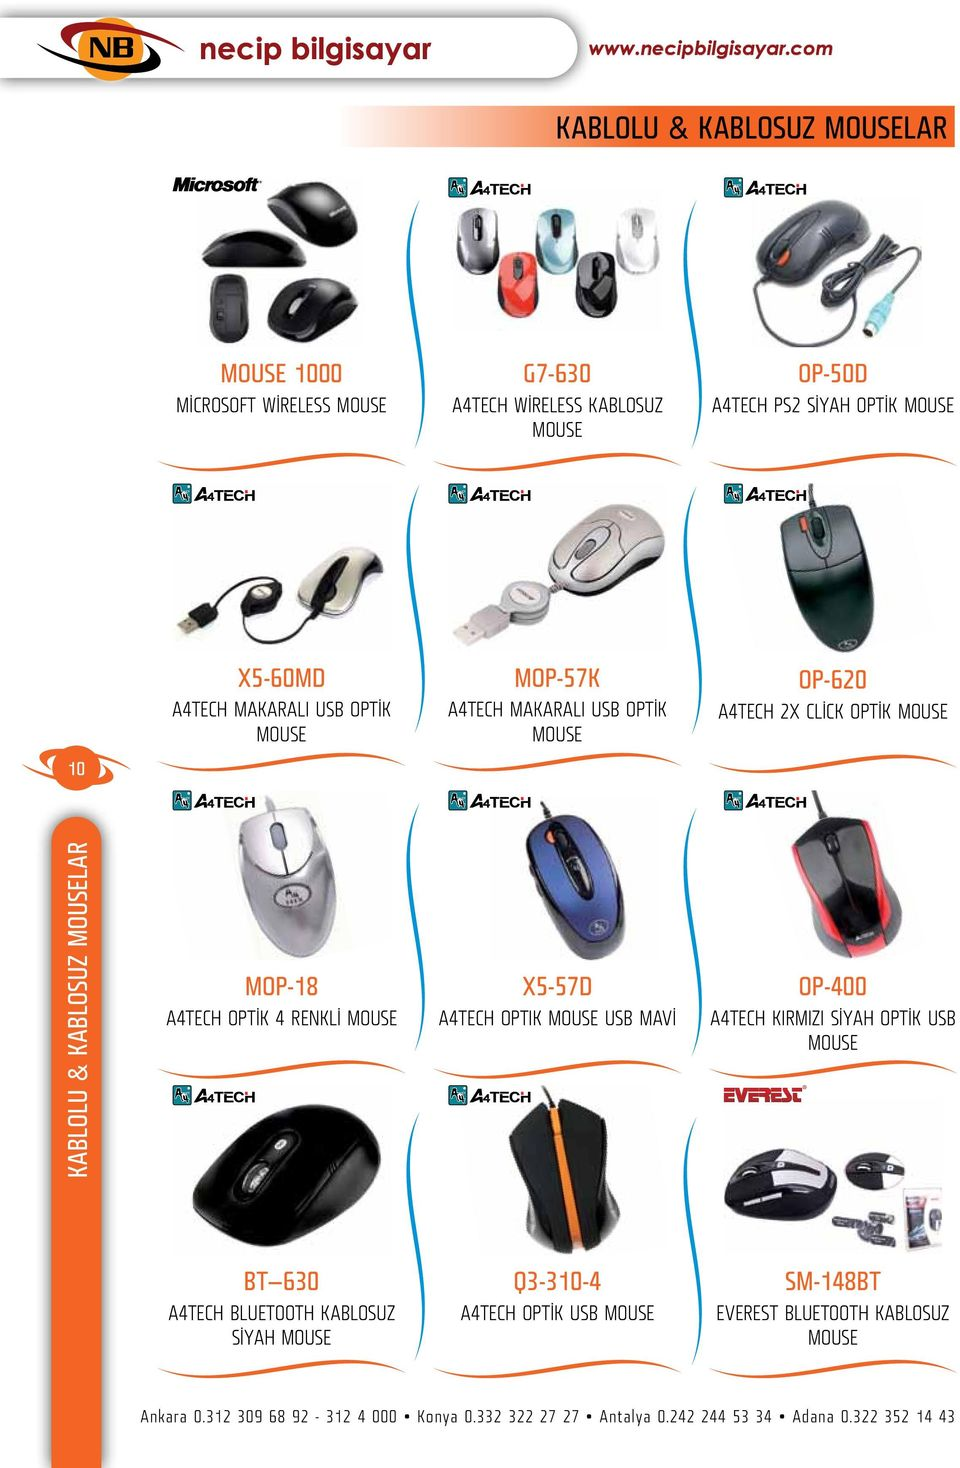 OP-400 A4TECH OPTİK 4 RENKLİ MOUSE A4TECH OPTIK MOUSE USB MAVİ A4TECH KIRMIZI SİYAH OPTİK USB MOUSE BT 630 Q3-310-4 SM-148BT A4TECH BLUETOOTH KABLOSUZ